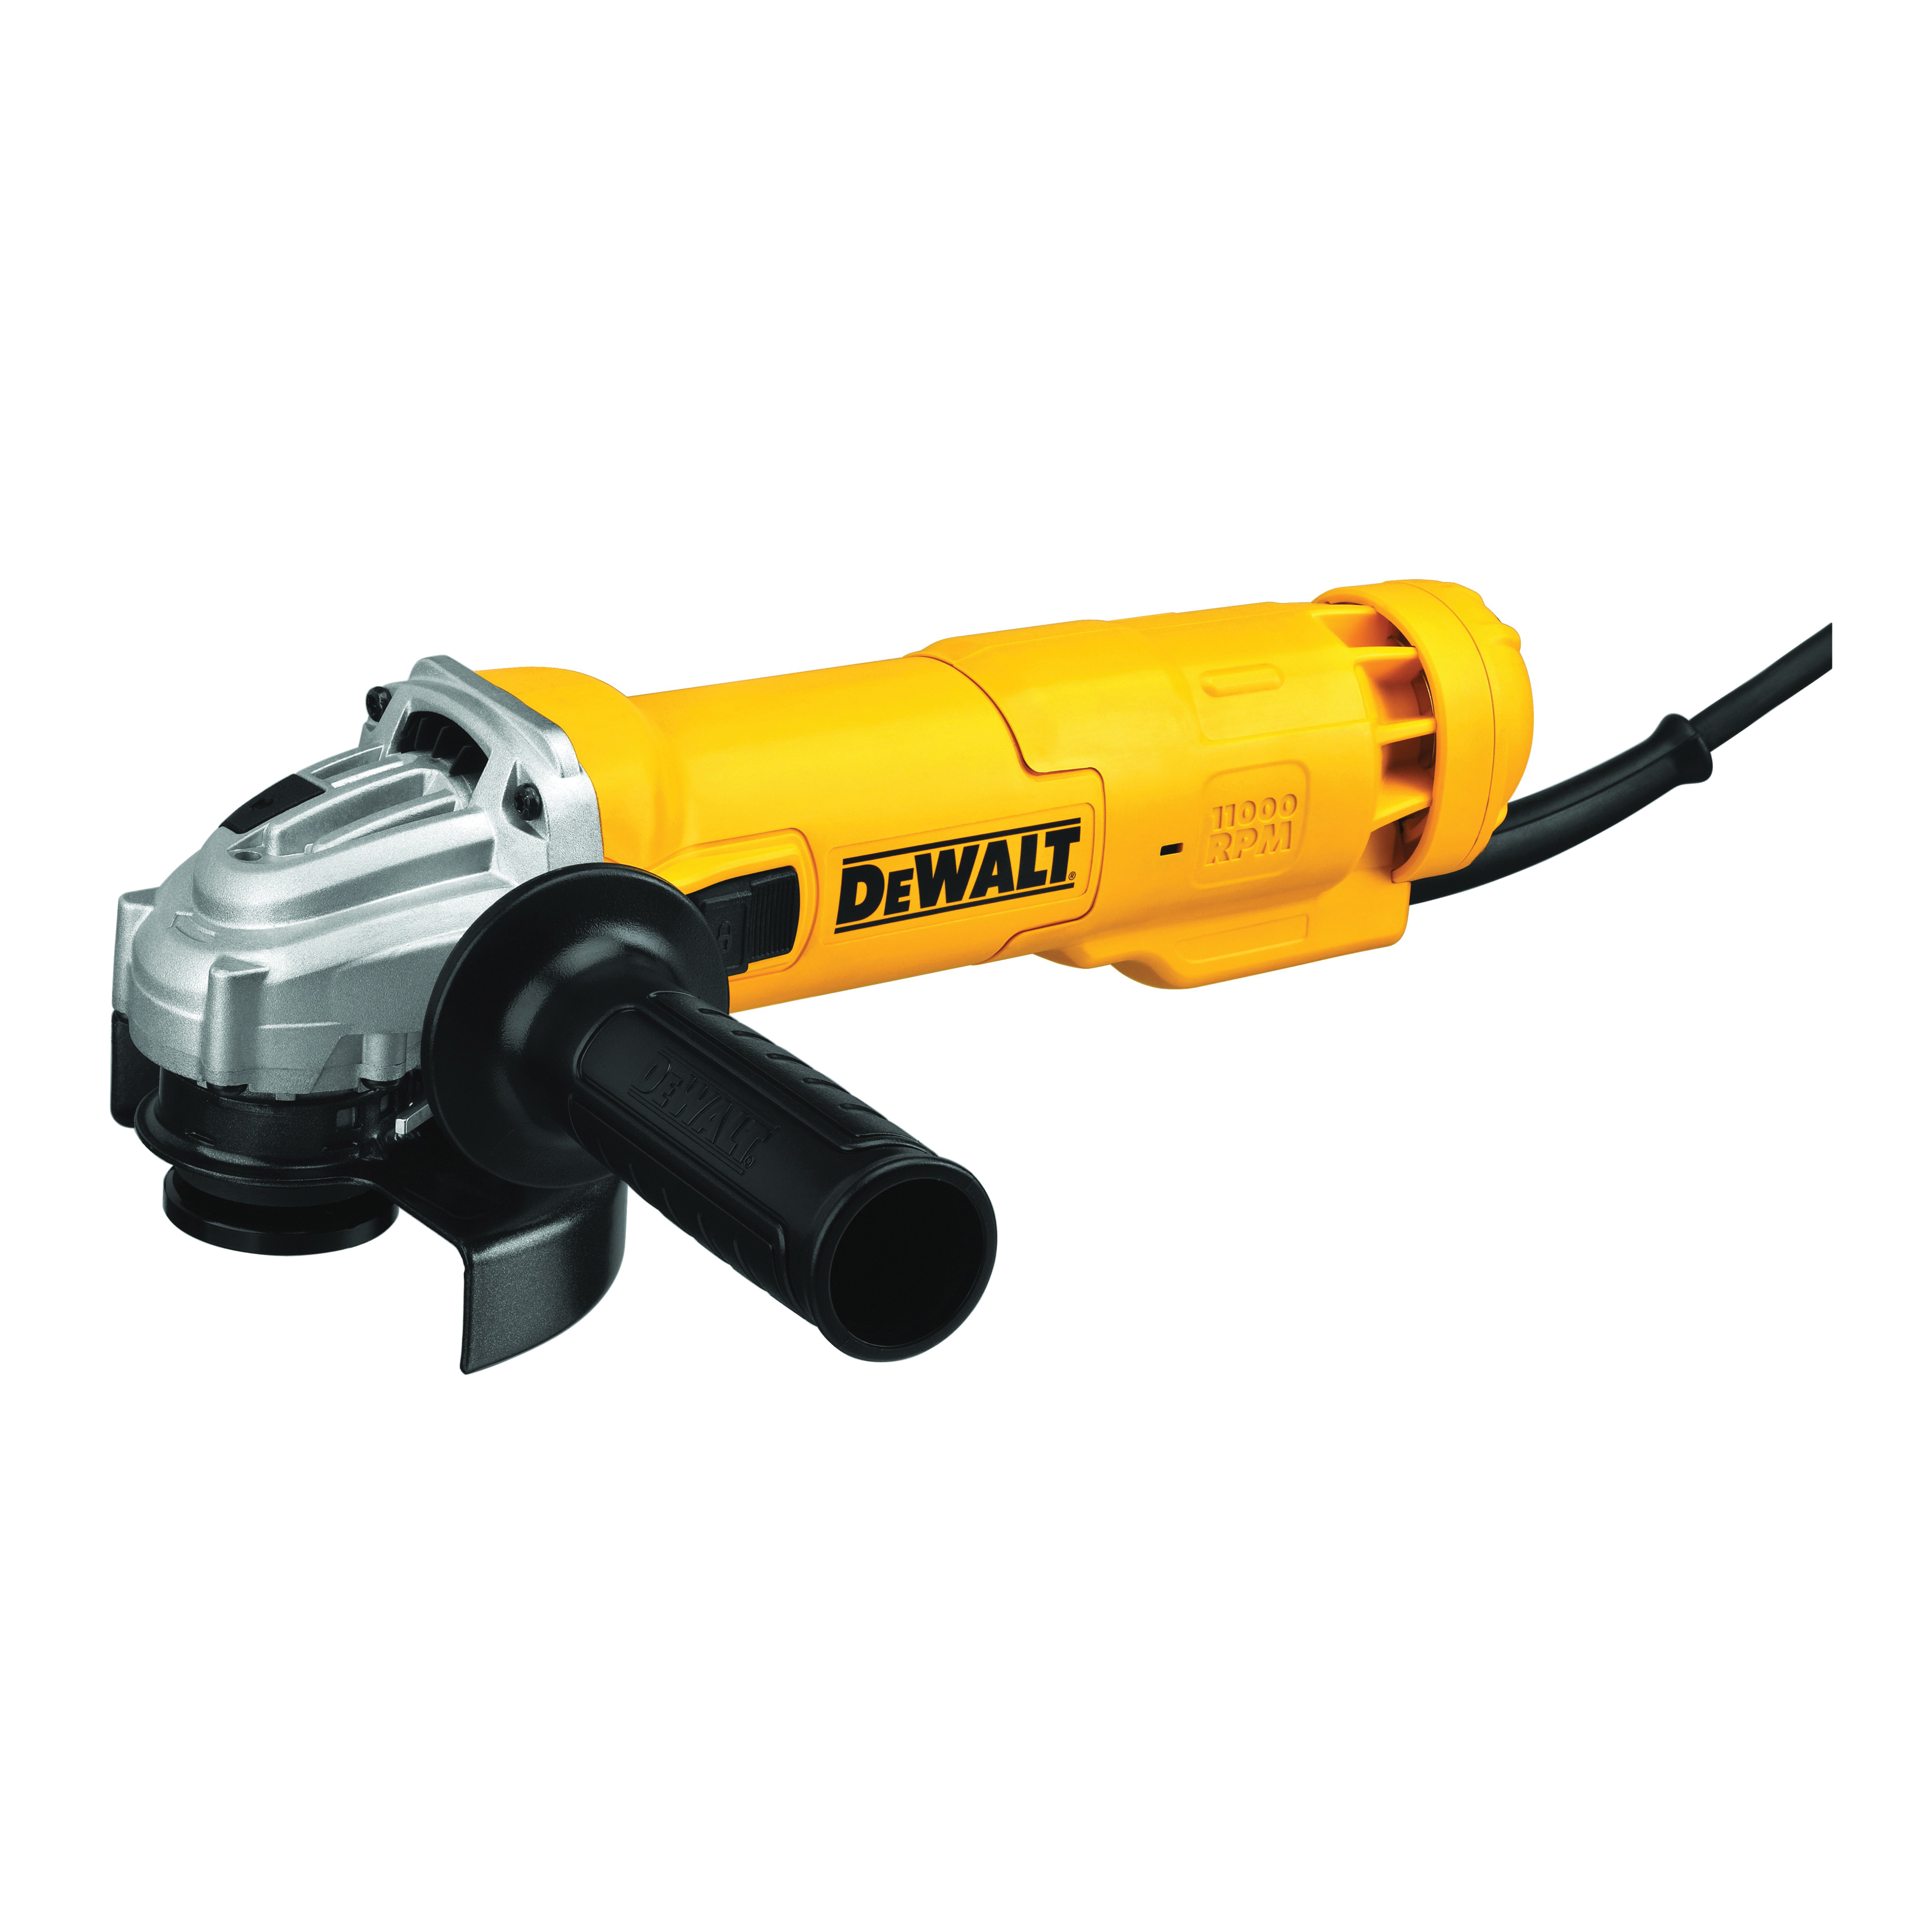 DeWALT® DWE4214 Low Profile Small Electric Angle Grinder, 4-1/2 in Dia Wheel, 5/8-11 UNC Arbor/Shank, 120 VAC, For Wheel: Quick-Change™, Black/Yellow, Yes Dust Management, Lock-On Slide Switch Switch, Tool Only